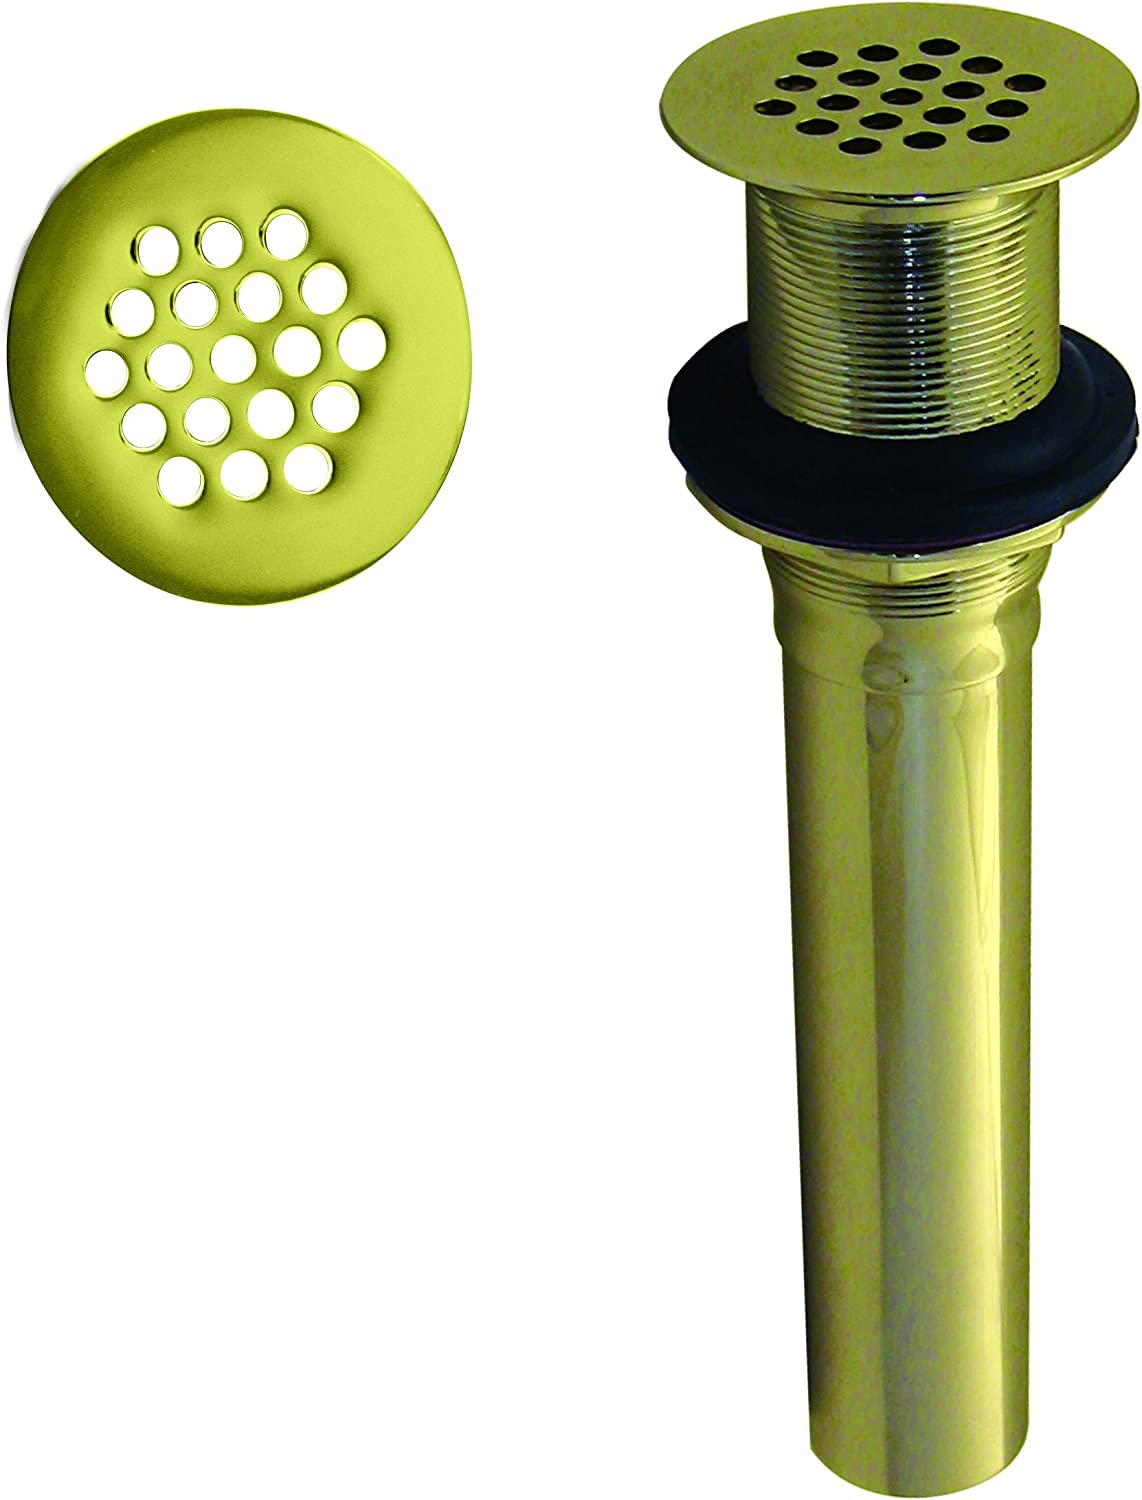 Baltimore Mall Westbrass D411-12-01 Grid Strainer Max 65% OFF Lavatory Overflow Drain H o w